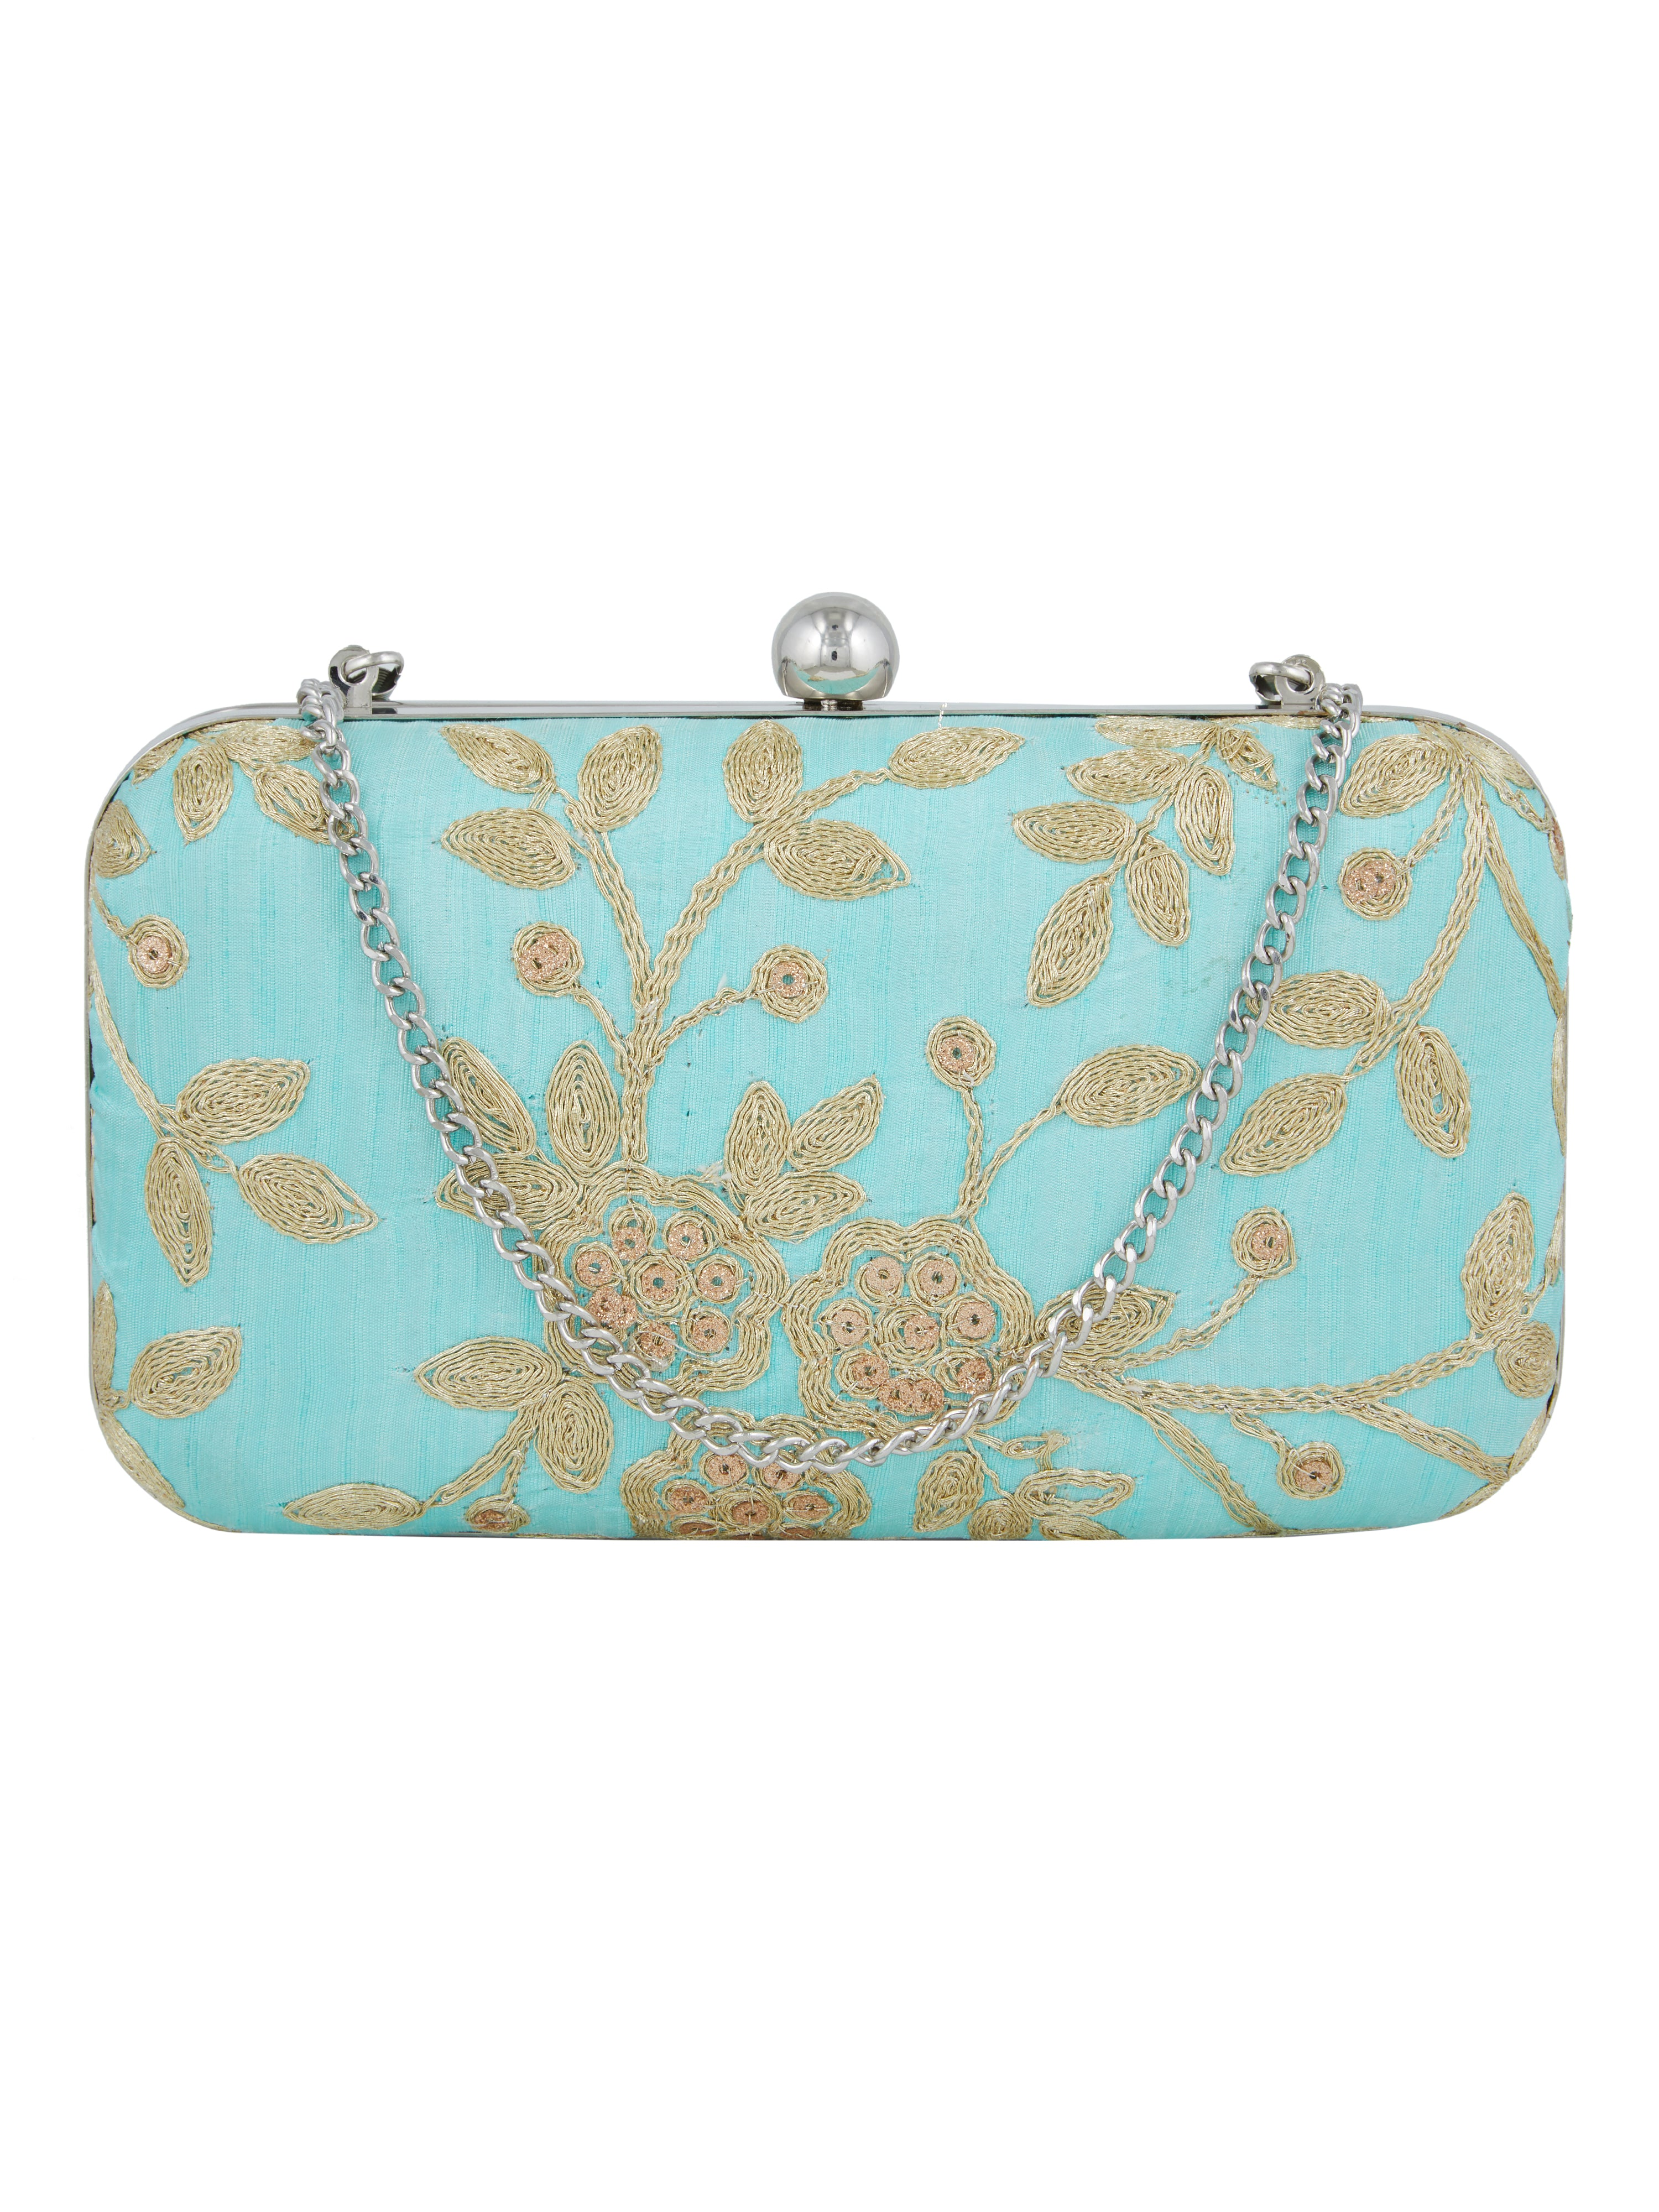 Keep your stuff handy while you are on the move with this blue coloured box clutch from the house of TARUSA. Made from silk fabric, this box clutch for women will be your companion for years to come. Unique and voguish, this box clutch will go well with your casual outfits.